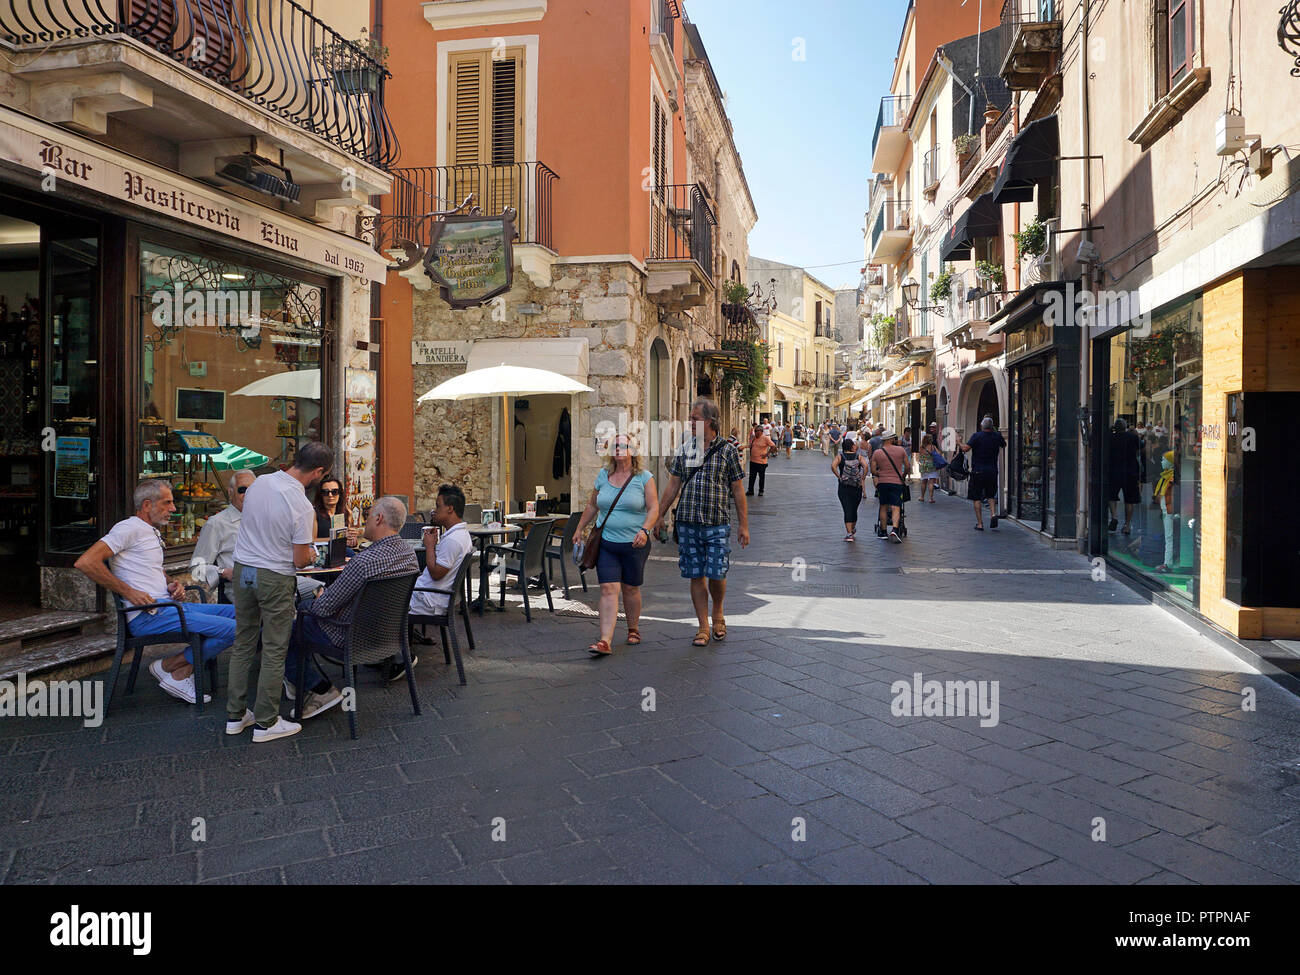 Corso Umberto I, main road and shopping mile of the old town of Taormina, Sicily, Italy Stock Photo